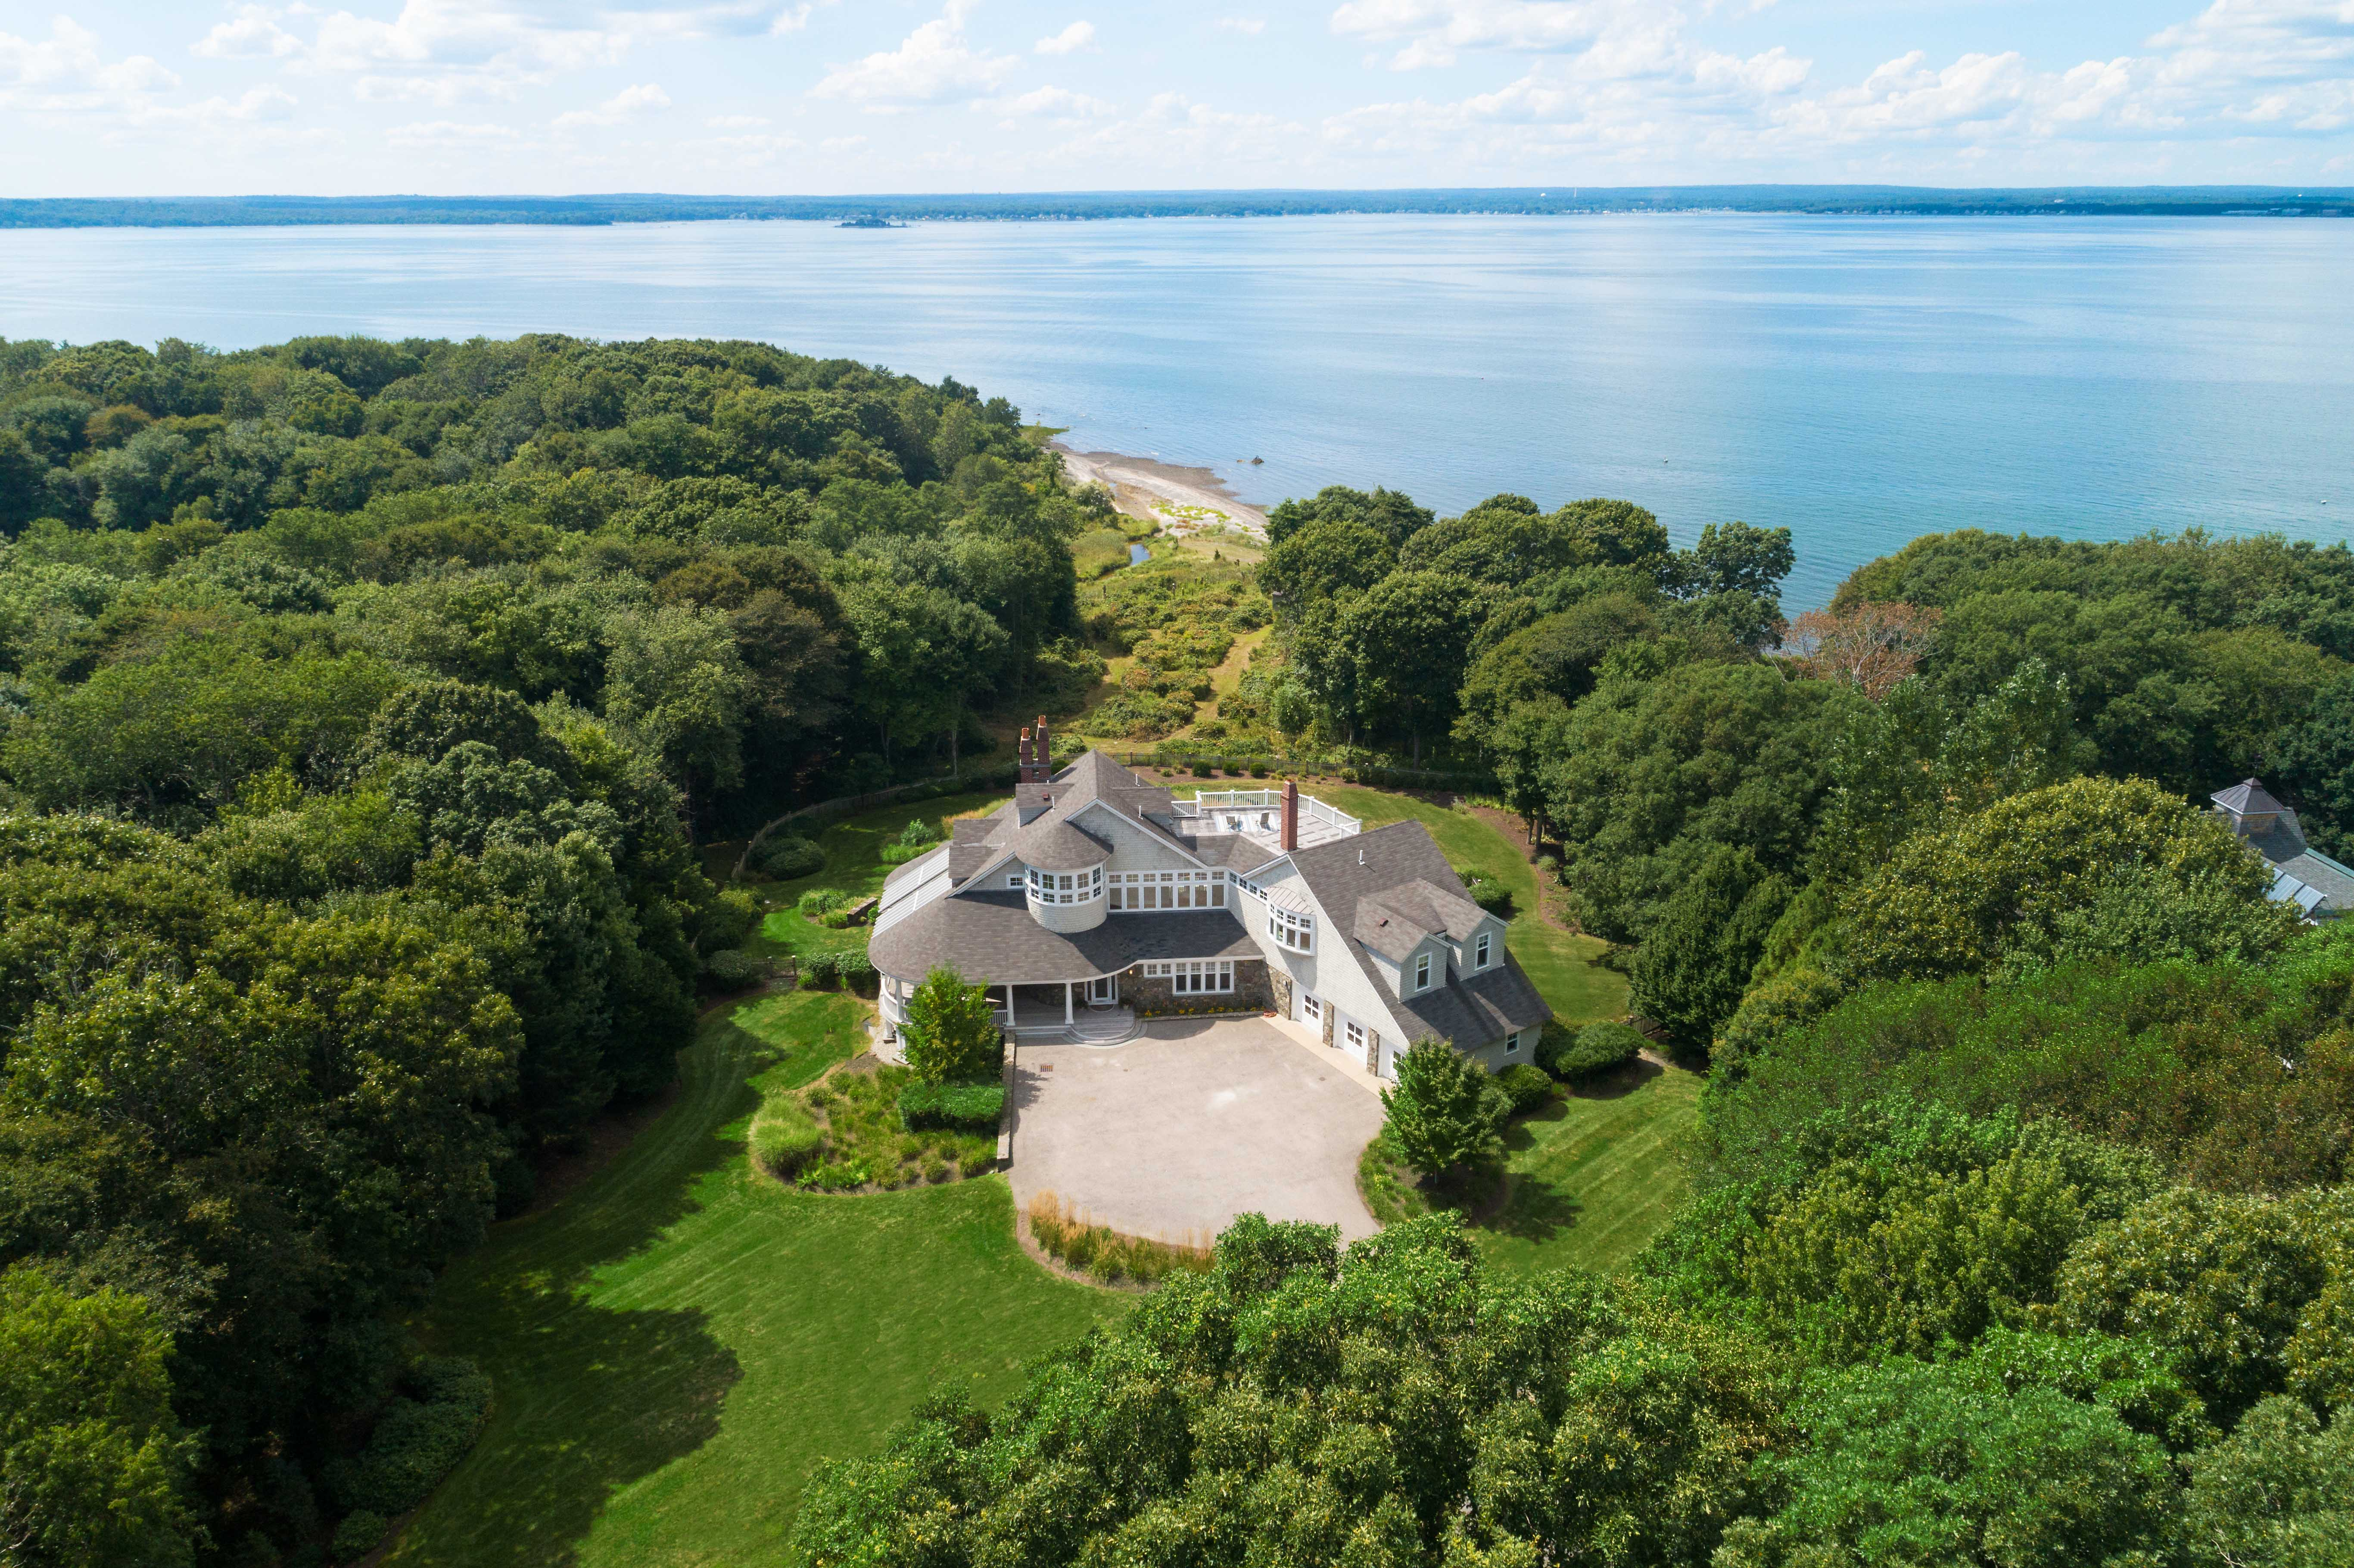 CYNTHIA MORETTI OF LILA DELMAN REAL ESTATE SELLS 'WEST VIEW', MARKING A TOP SALE IN JAMESTOWN FOR 2019